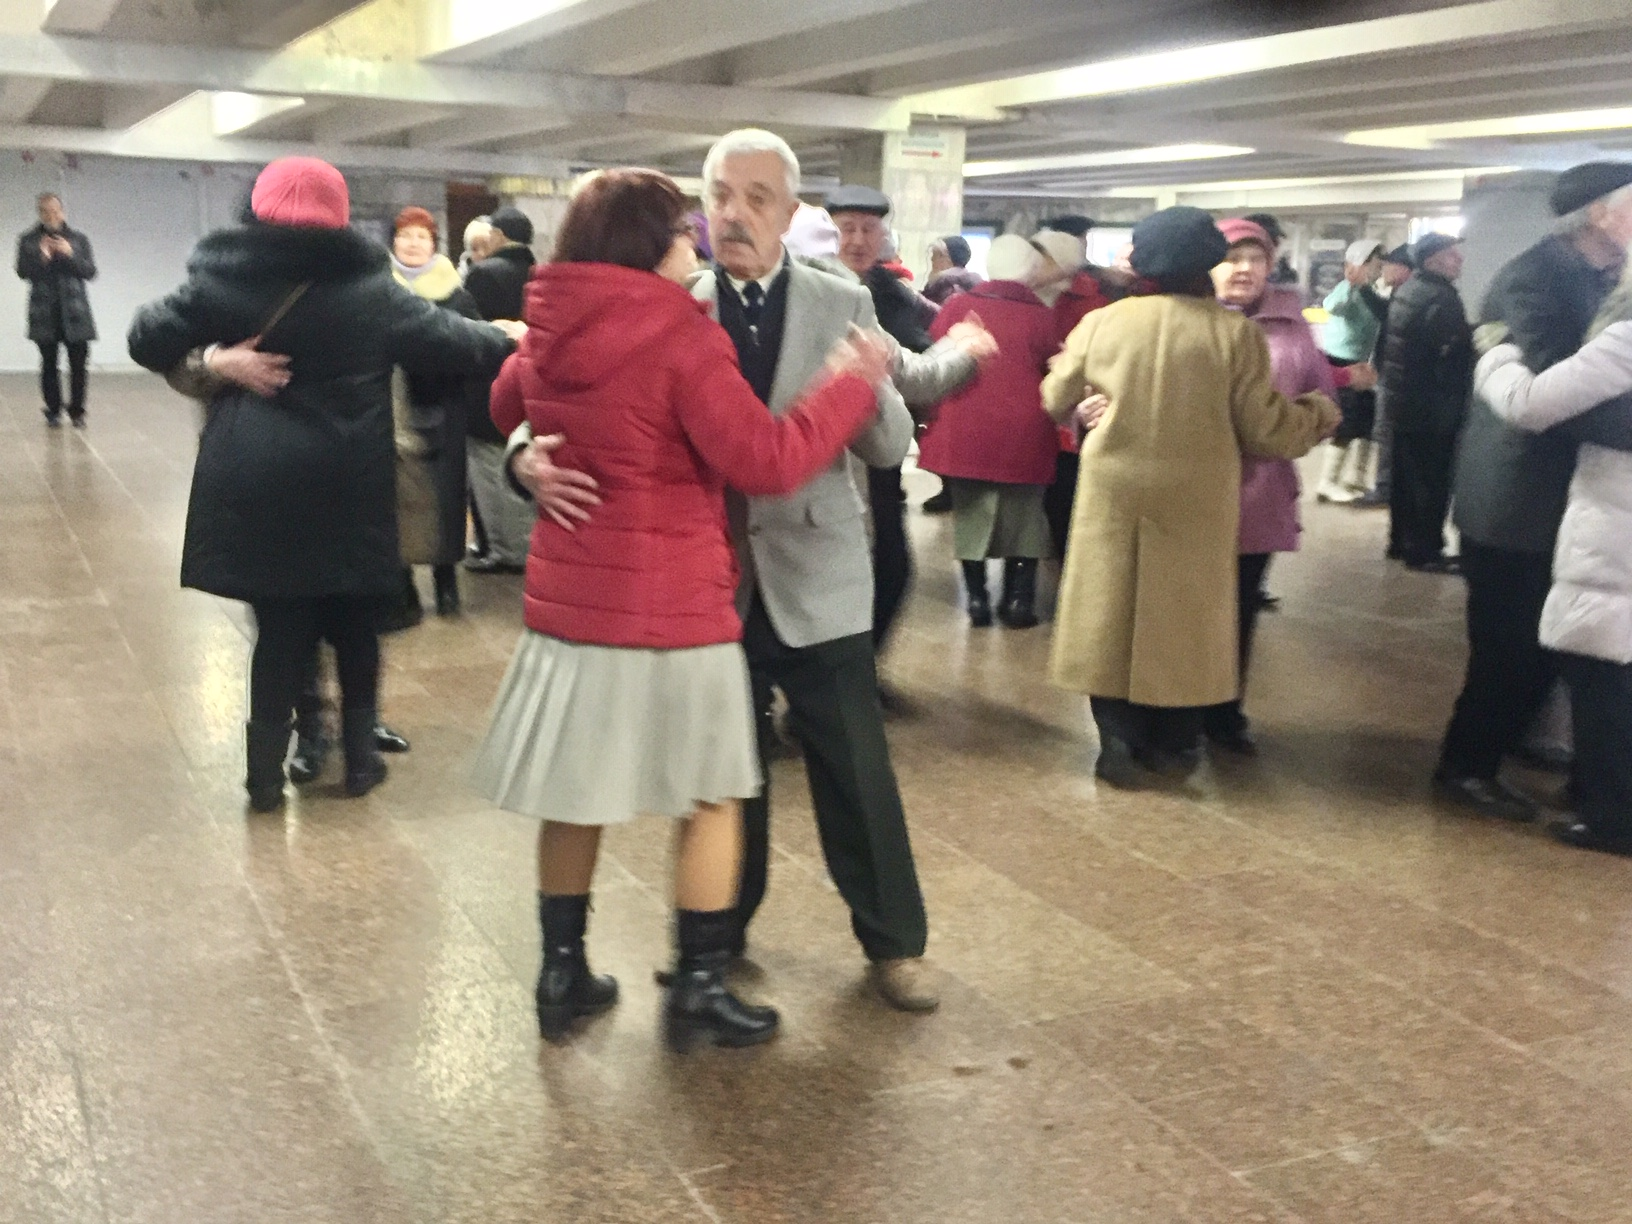 Saturday night dancing Kyiv metro